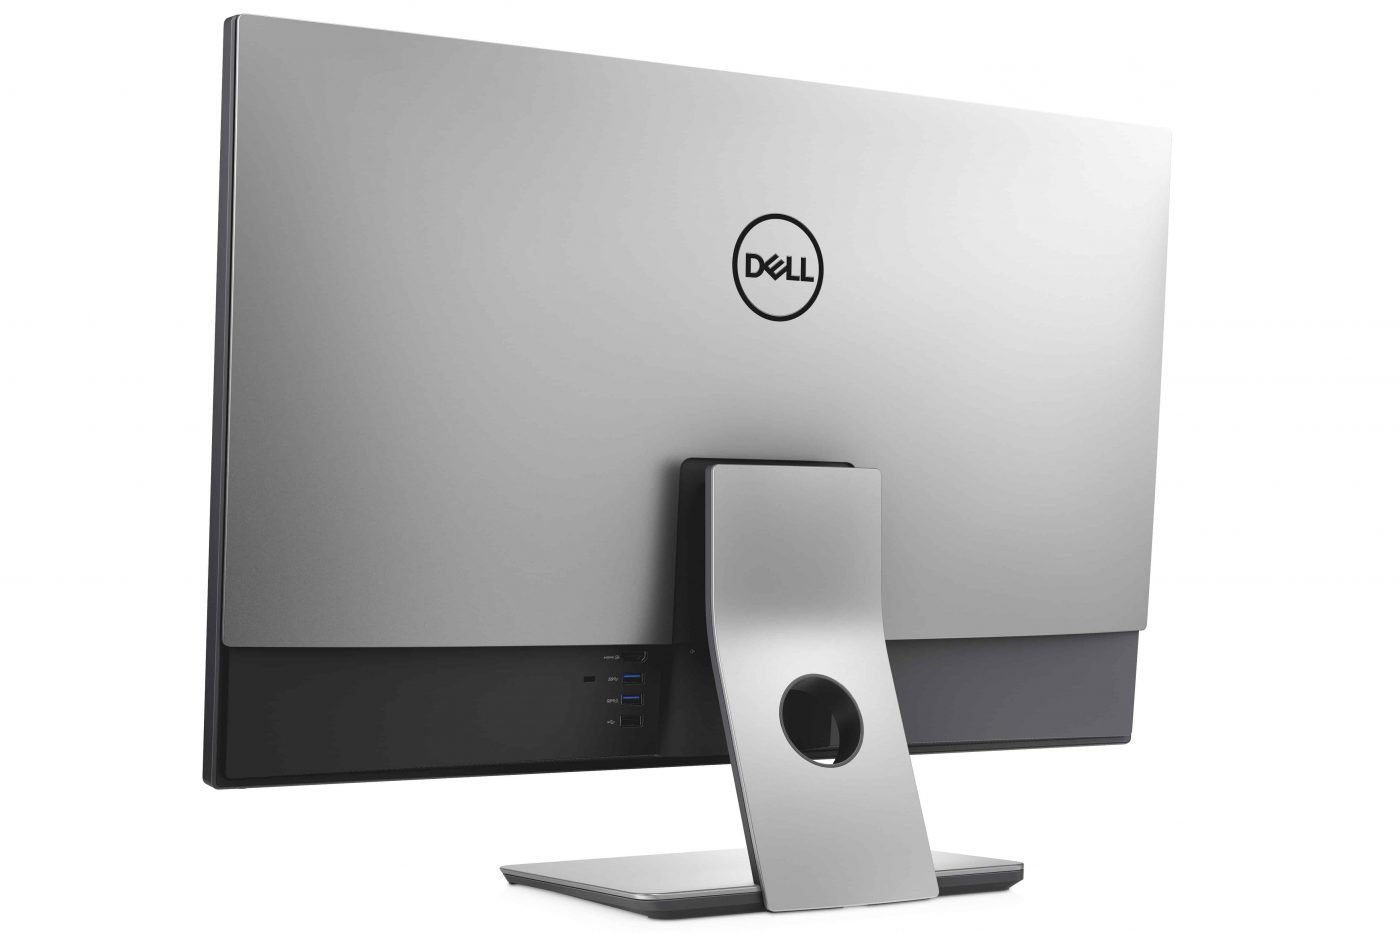 DELL Inspiron 27 7775 AIO Ryzen 5 1400 8GB RAM 1TB HDD 27'' FHD (1920x1080)  AMD Radeon RX 560 4GB all in one PC with Infra-Red webcam